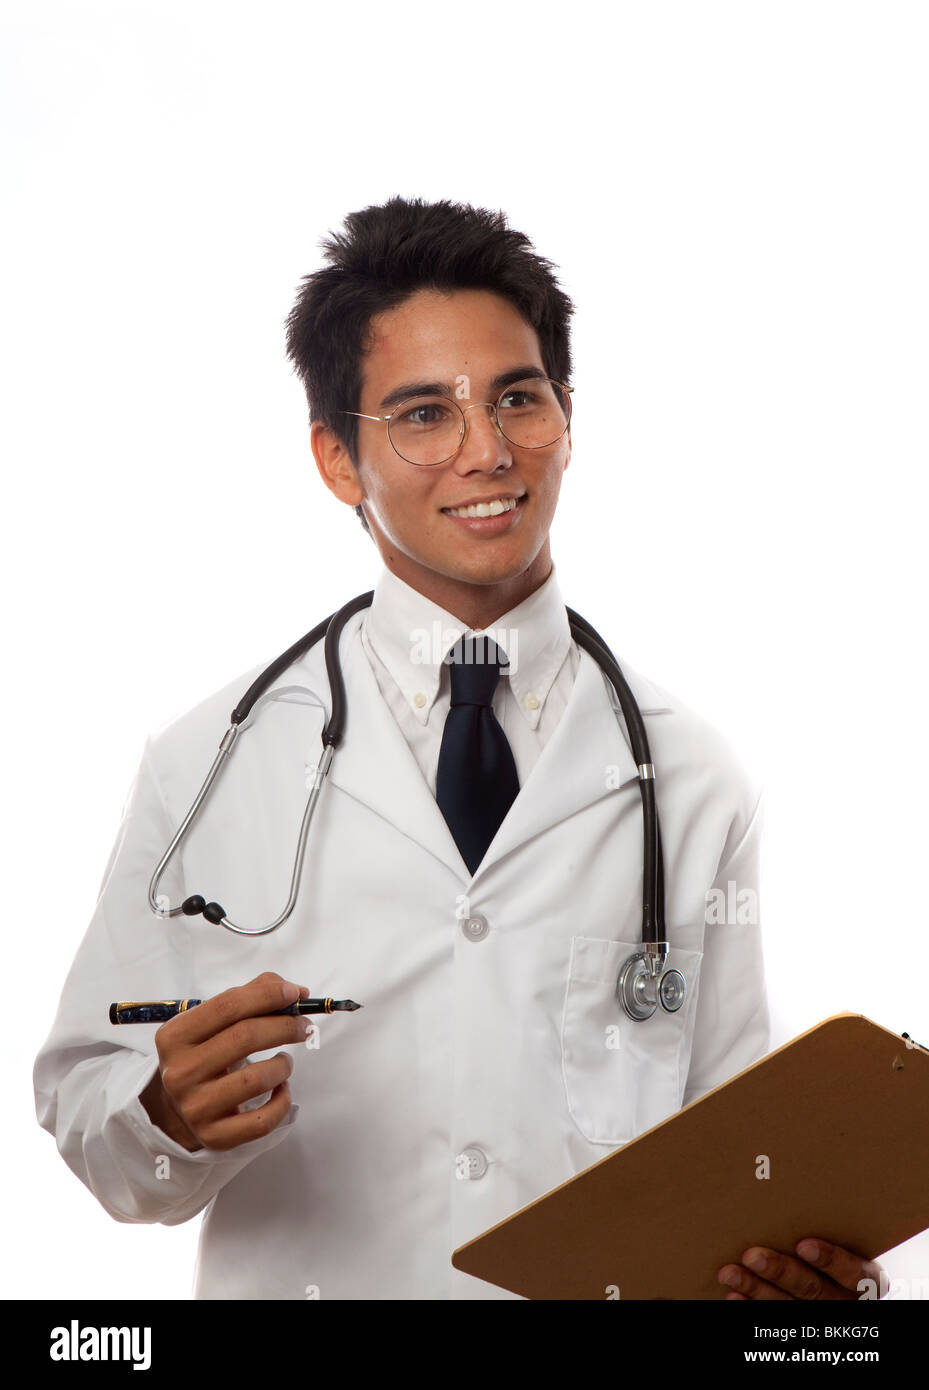 young asian doctor/medical student/intern in lab coat - Stock Image